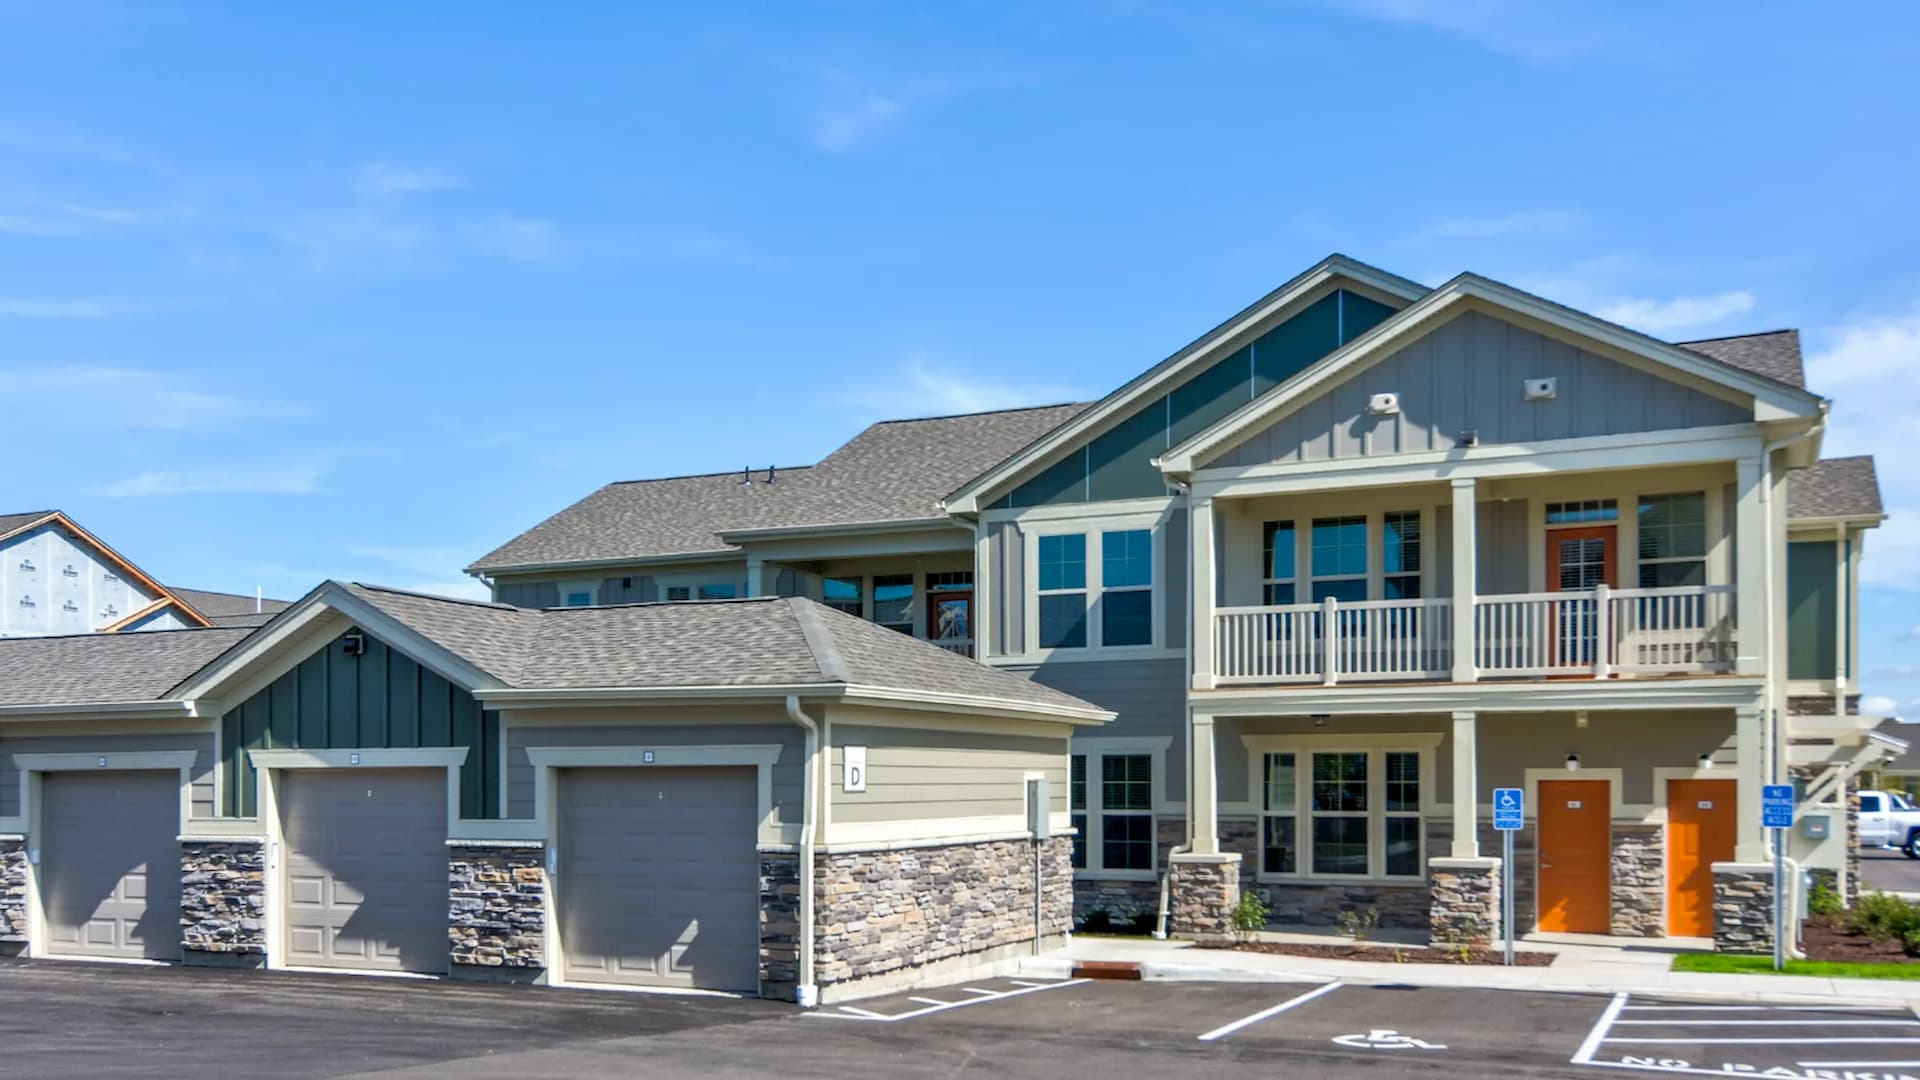 Townhome Apartment Exterior in Apple Valley at Springs at Cobblestone Lake 2